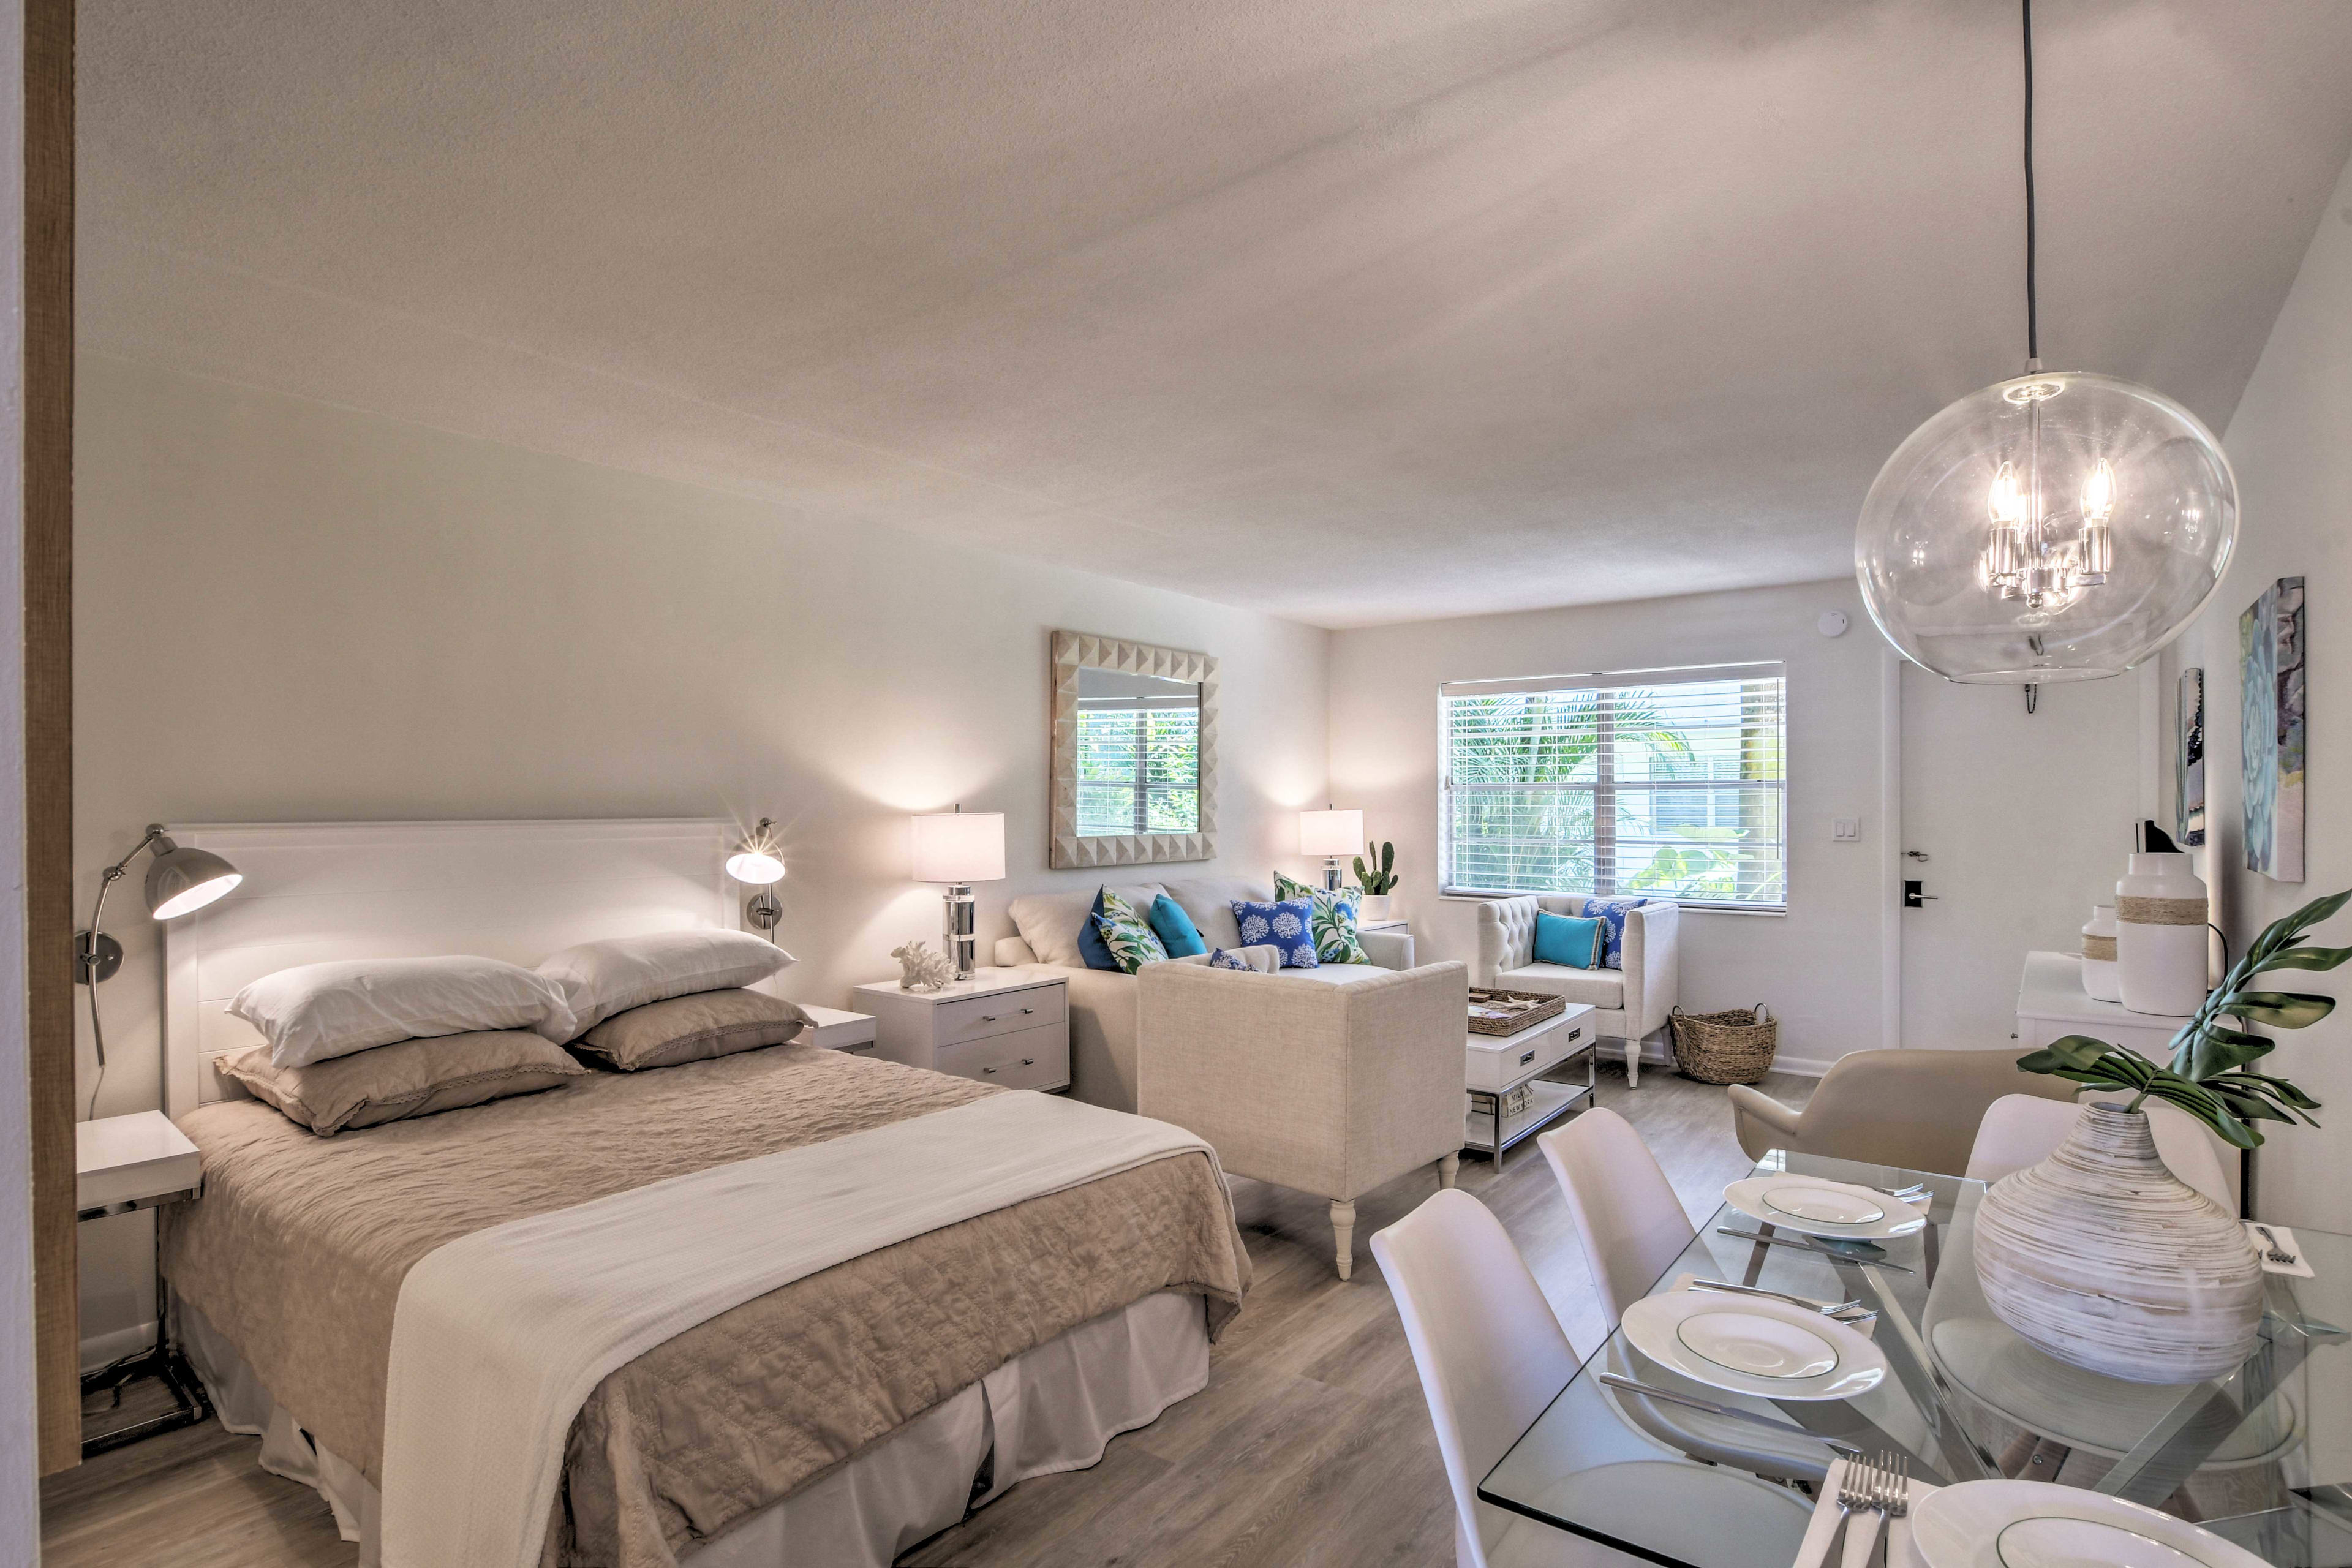 The studio offers a queen-sized bed.